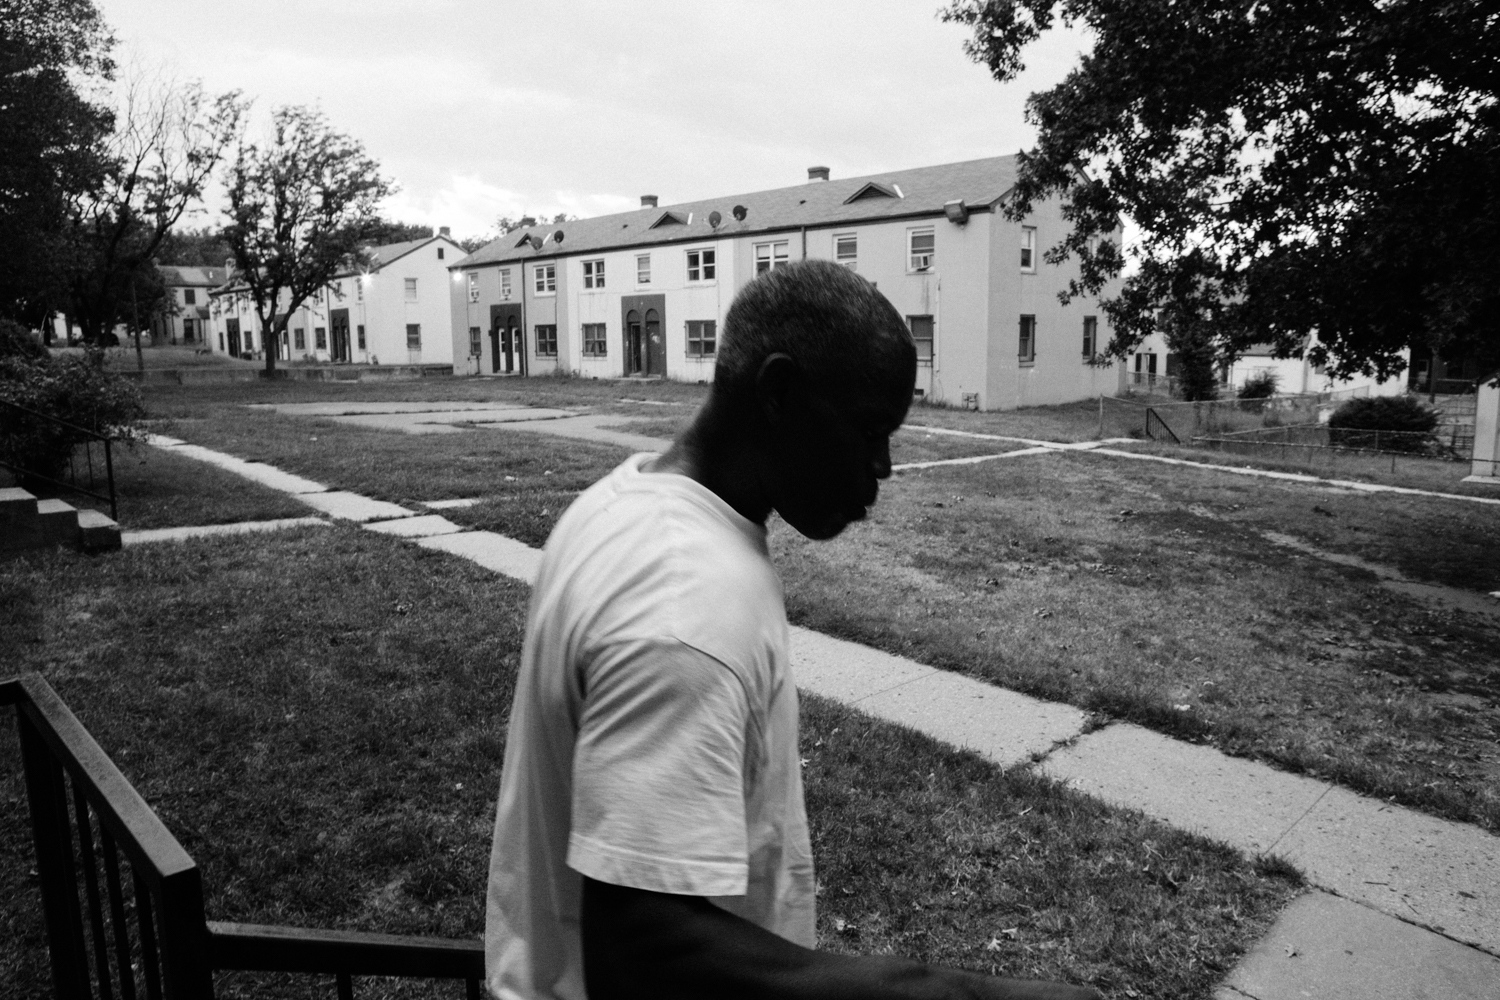 """Charles """"Chit"""" lived in Barry Farm when he was 9 years old, at a time when D.C. was considered the murder capital of the world. After 23 years of incarceration for homicide, he returned to Barry Farm as a homeless man. He stays at a nearby shelter, but he visits Barry Farm everyday. He says it will always be his home. September 10, 2016."""